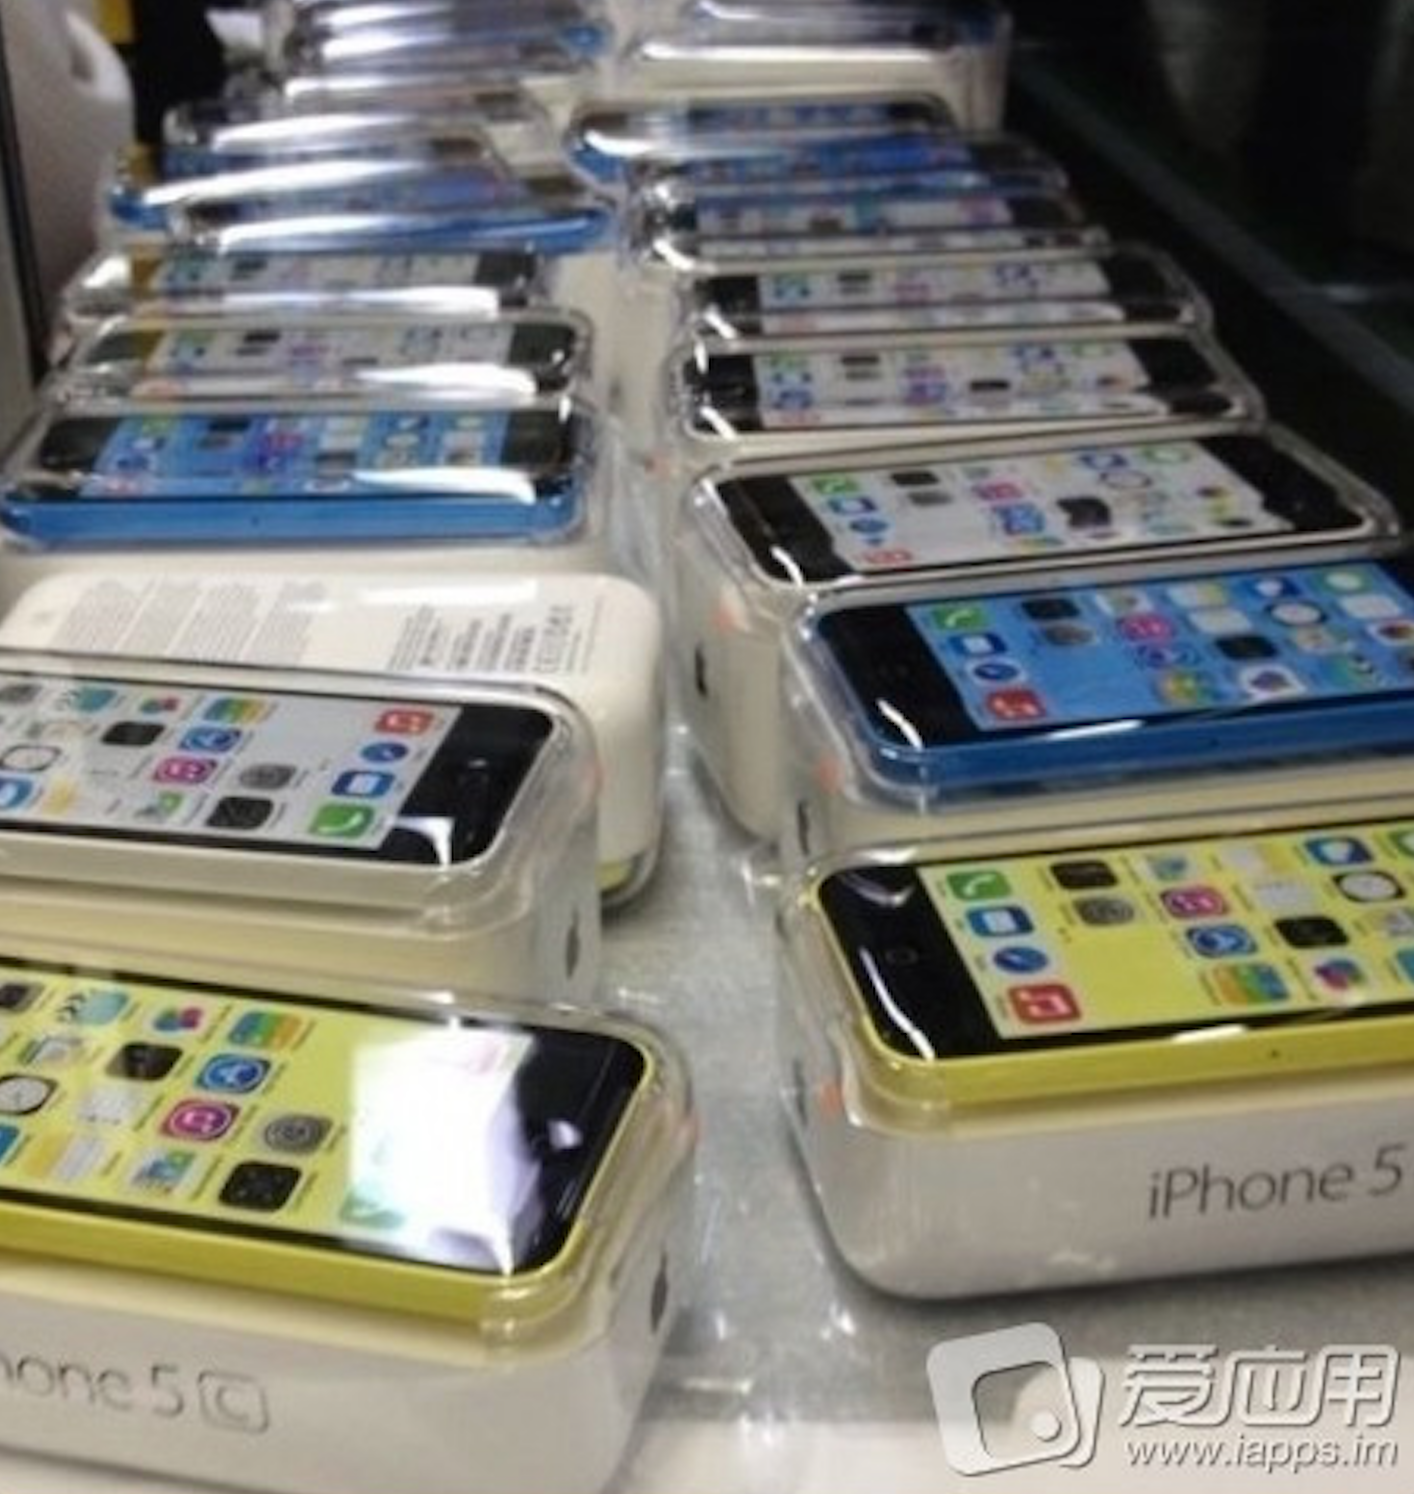 Photos Claim To Show Iphone 5c Packaging Color Matched